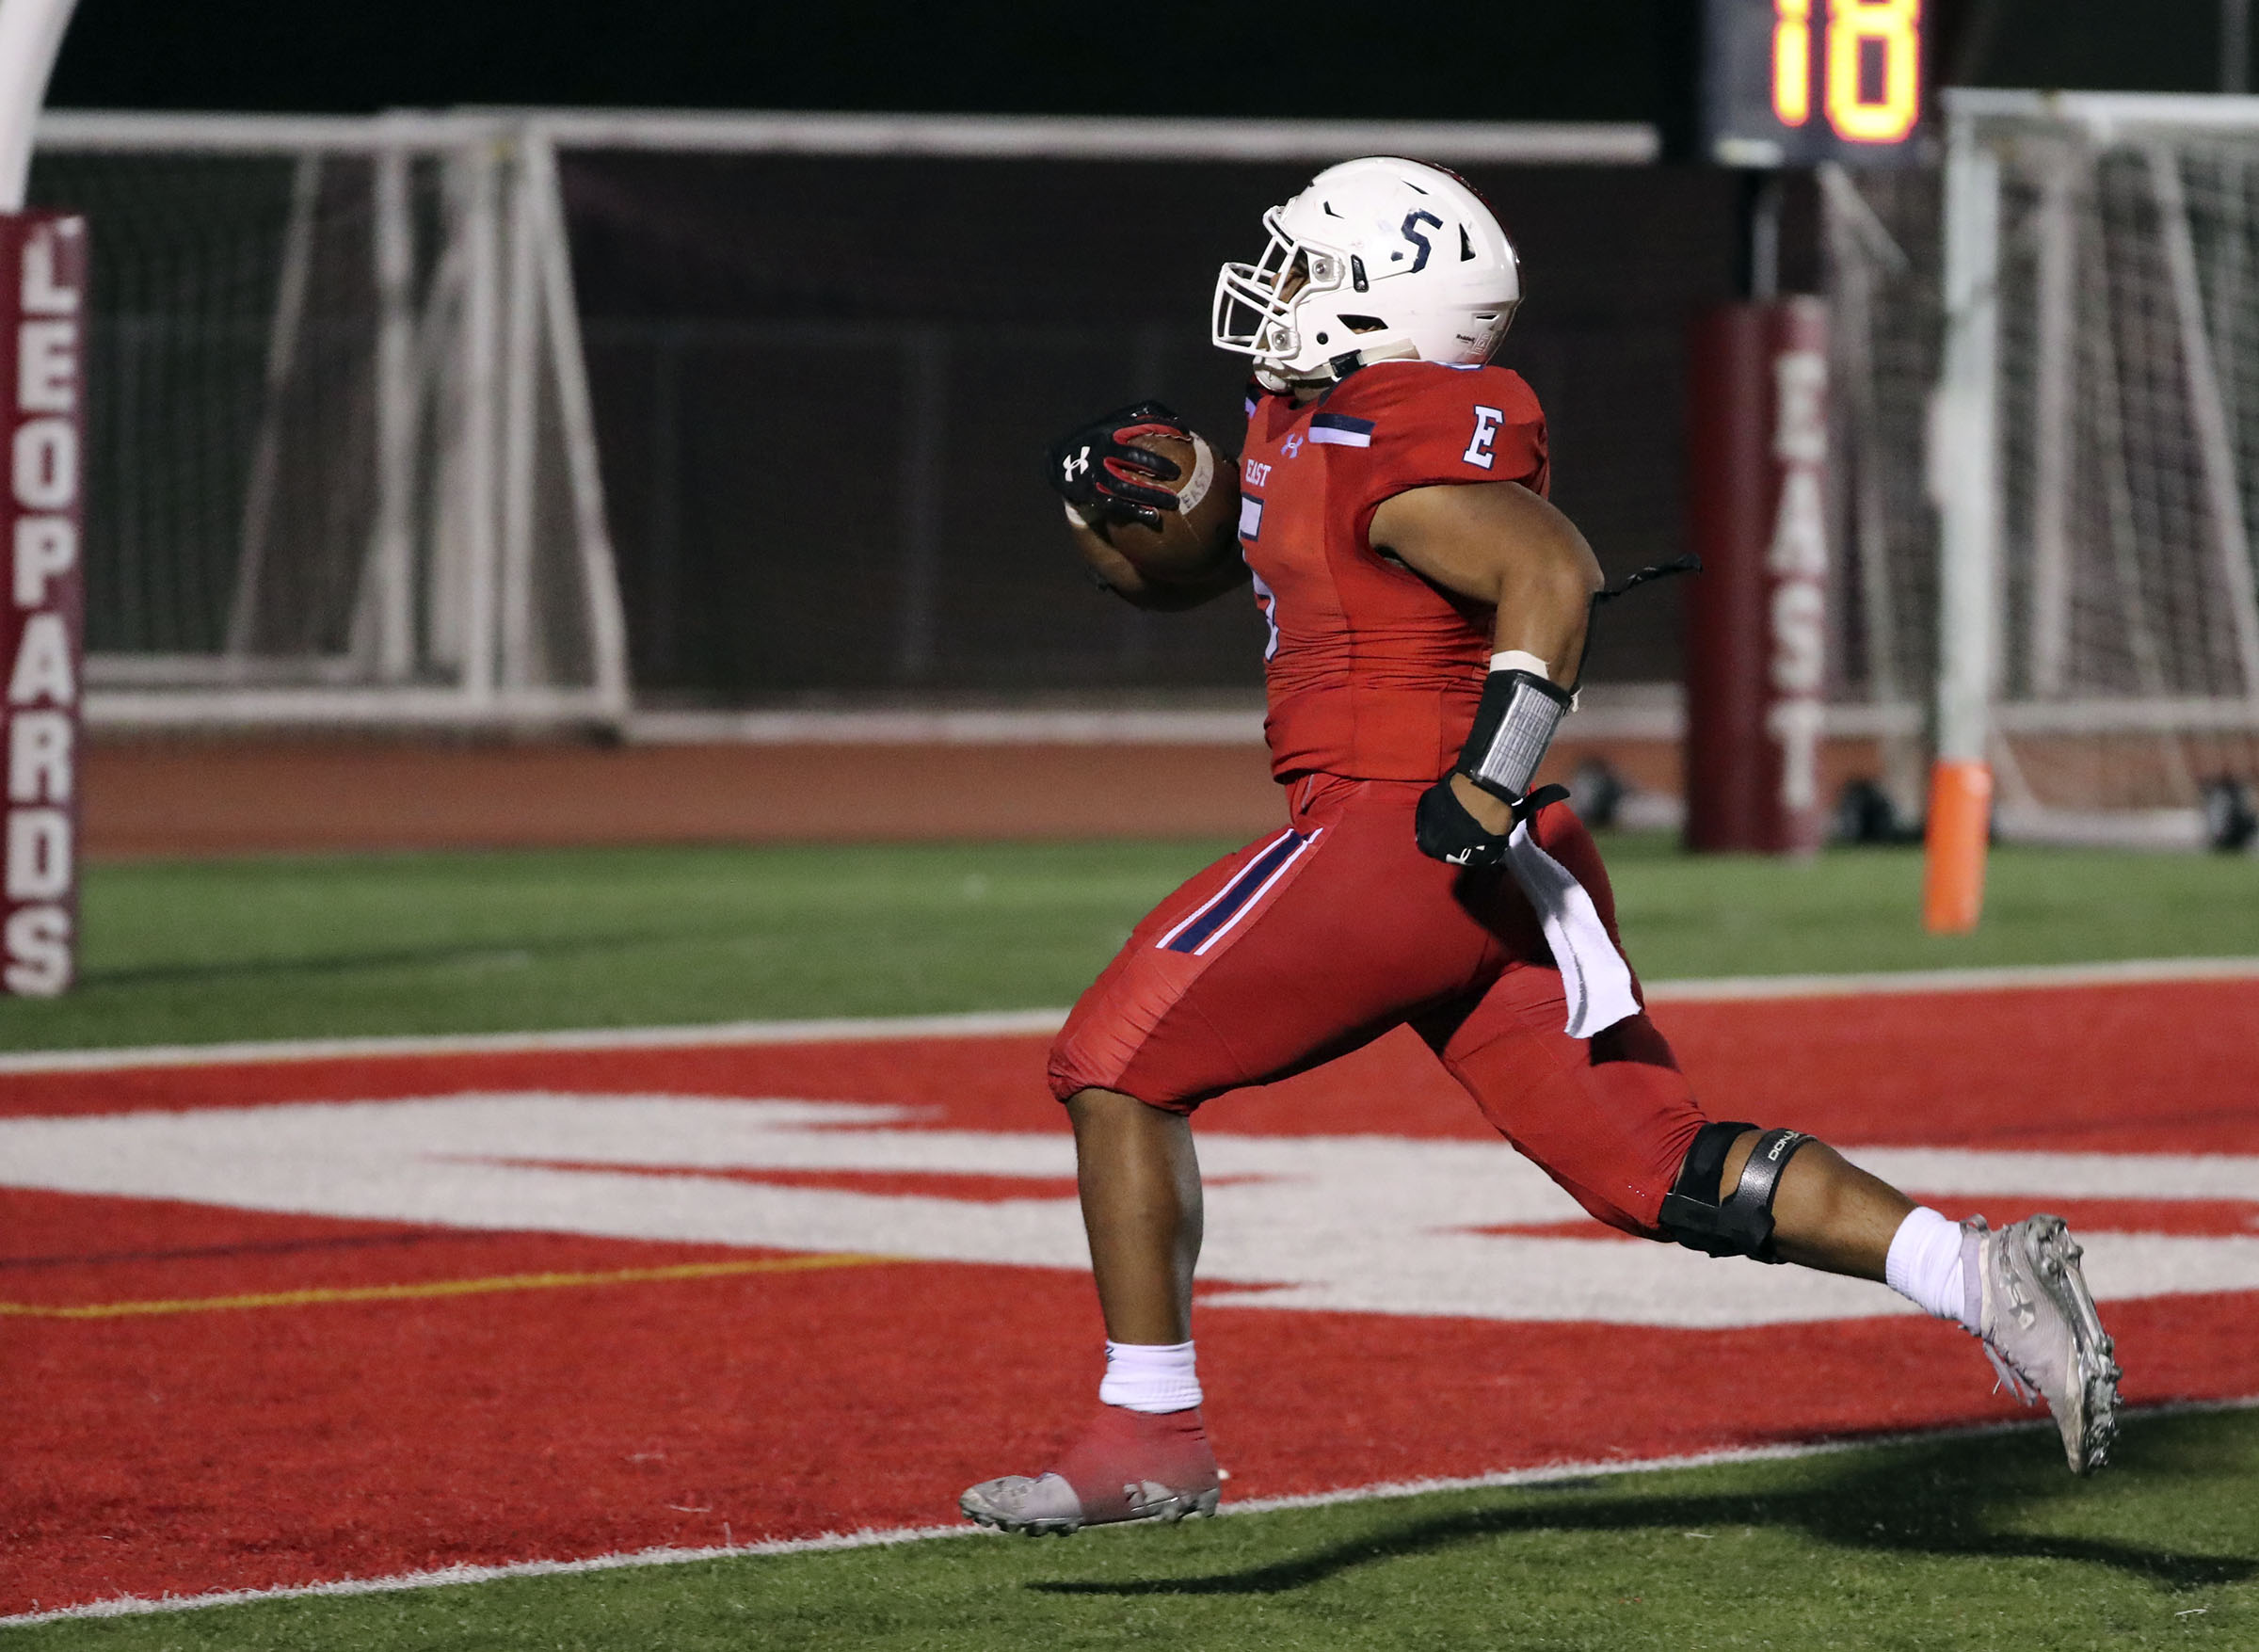 East High's Sione Angilau scores a touchdown during a football game against Herriman at East High School in Salt Lake City on Friday, Oct. 4, 2019. East won 13-10.